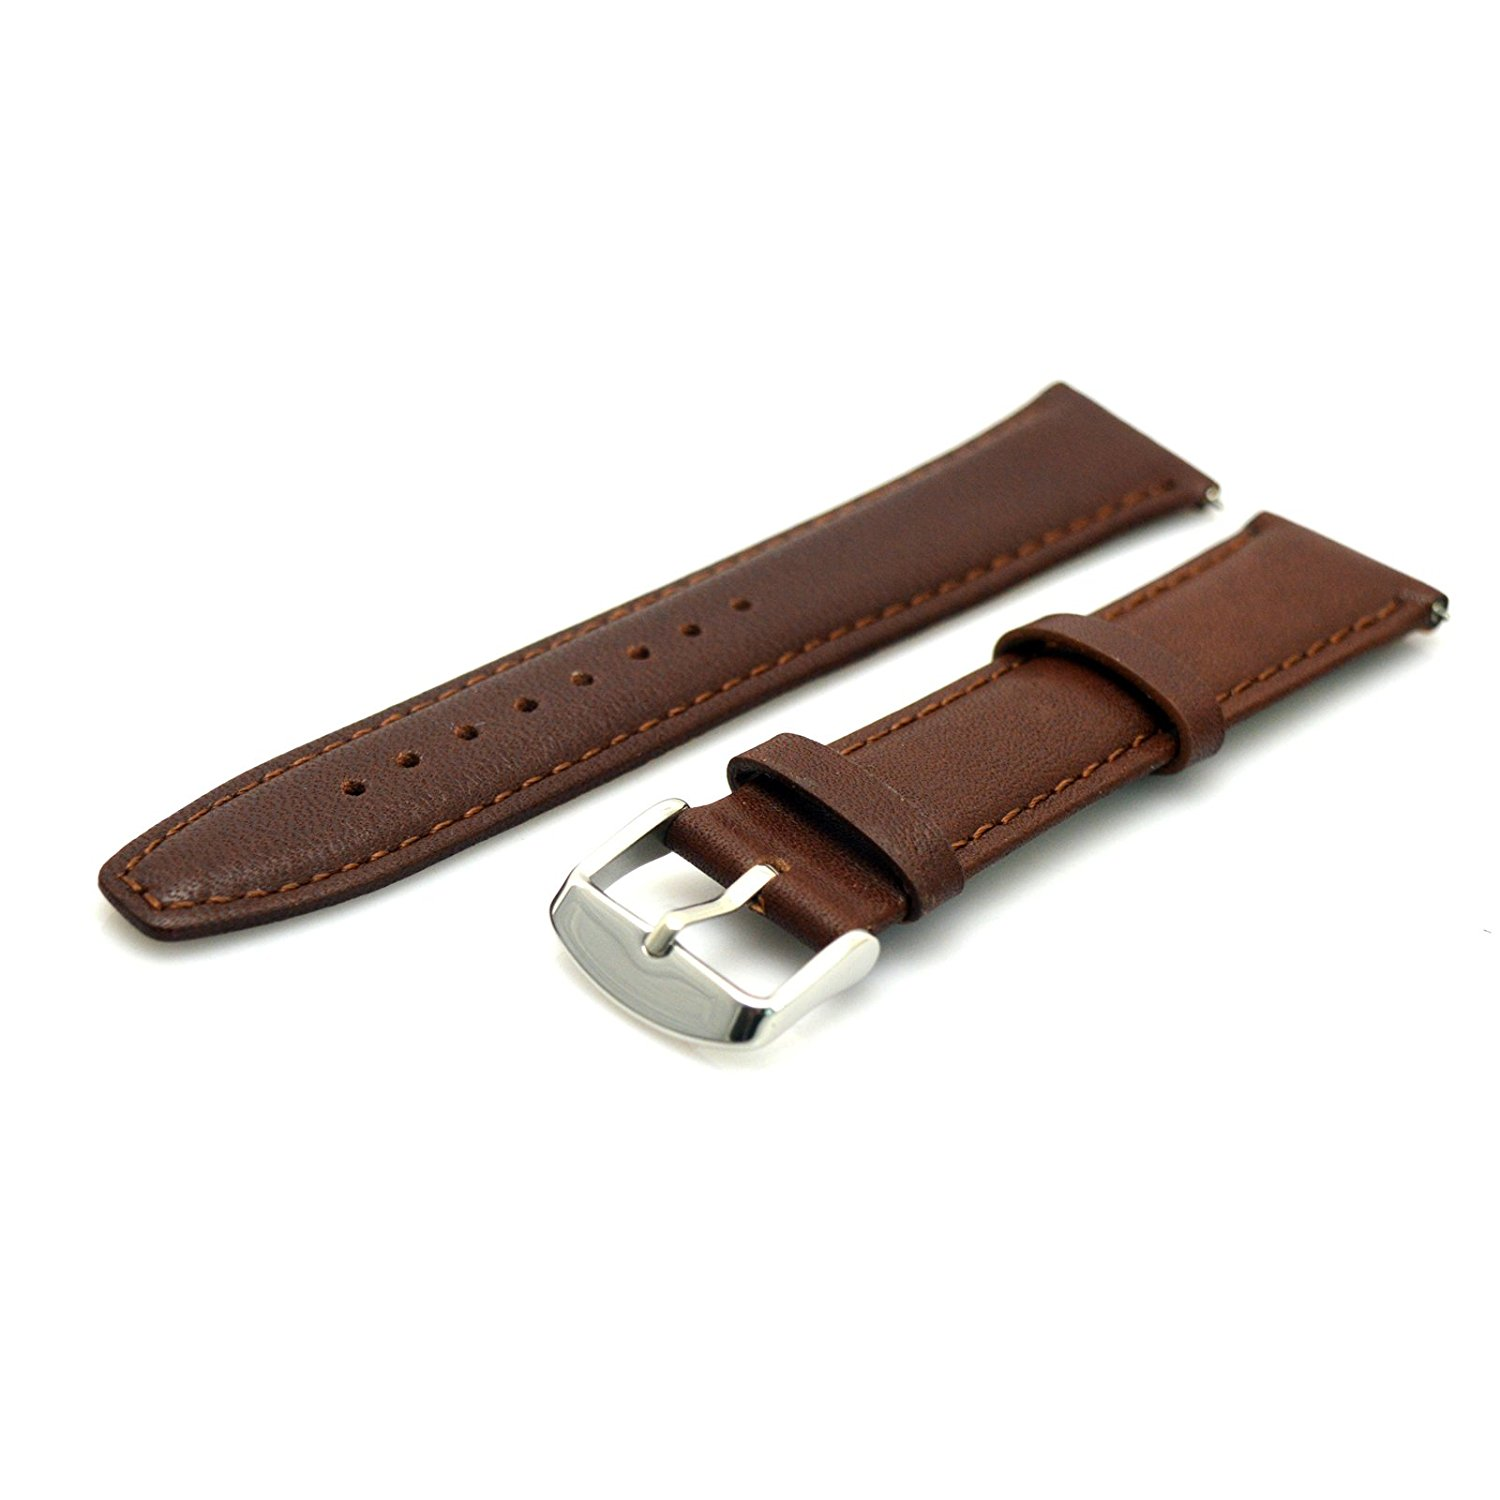 MOTO 360 2nd Gen 42mm Leather Watch Band, VONOTO Coffee 20mm Universal Genuine Leather Smart Watch Replacement Bands for MOTO 360 II 2nd Gen 42mm,Samsung Gear S2 Classic Smart Watch (Coffee)